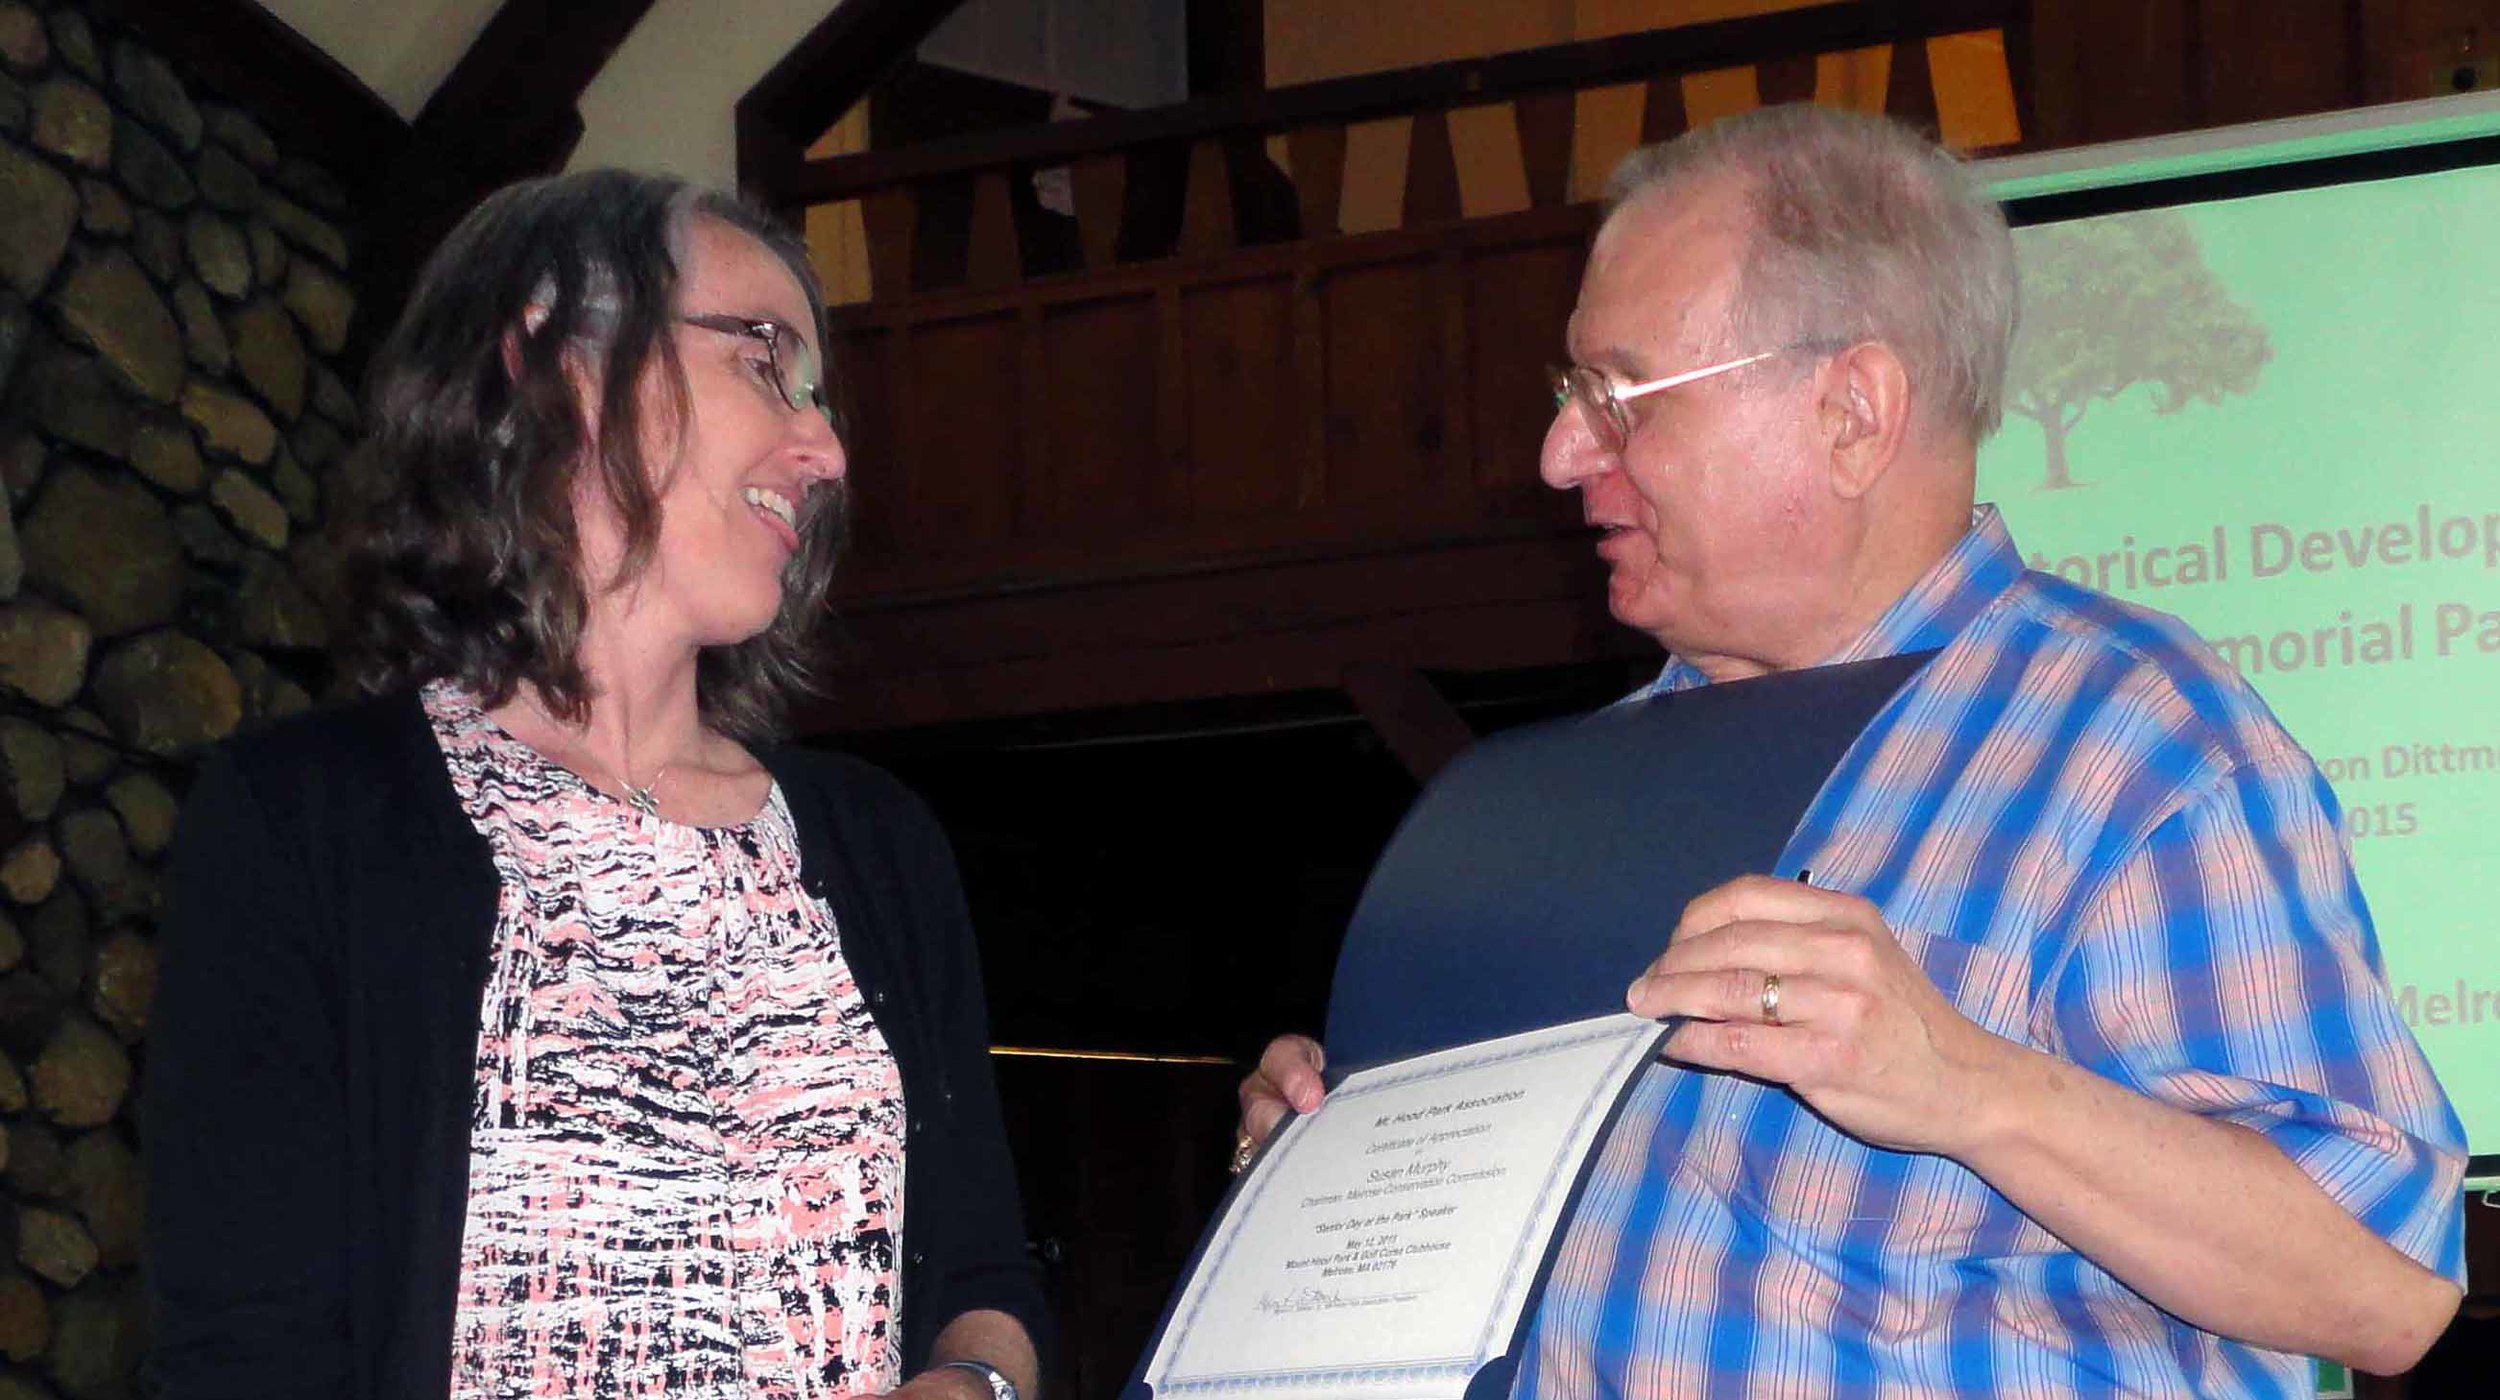 Association president, Myron Dittmer, presenting Susan Murphy with a Certificate of Appreciation.